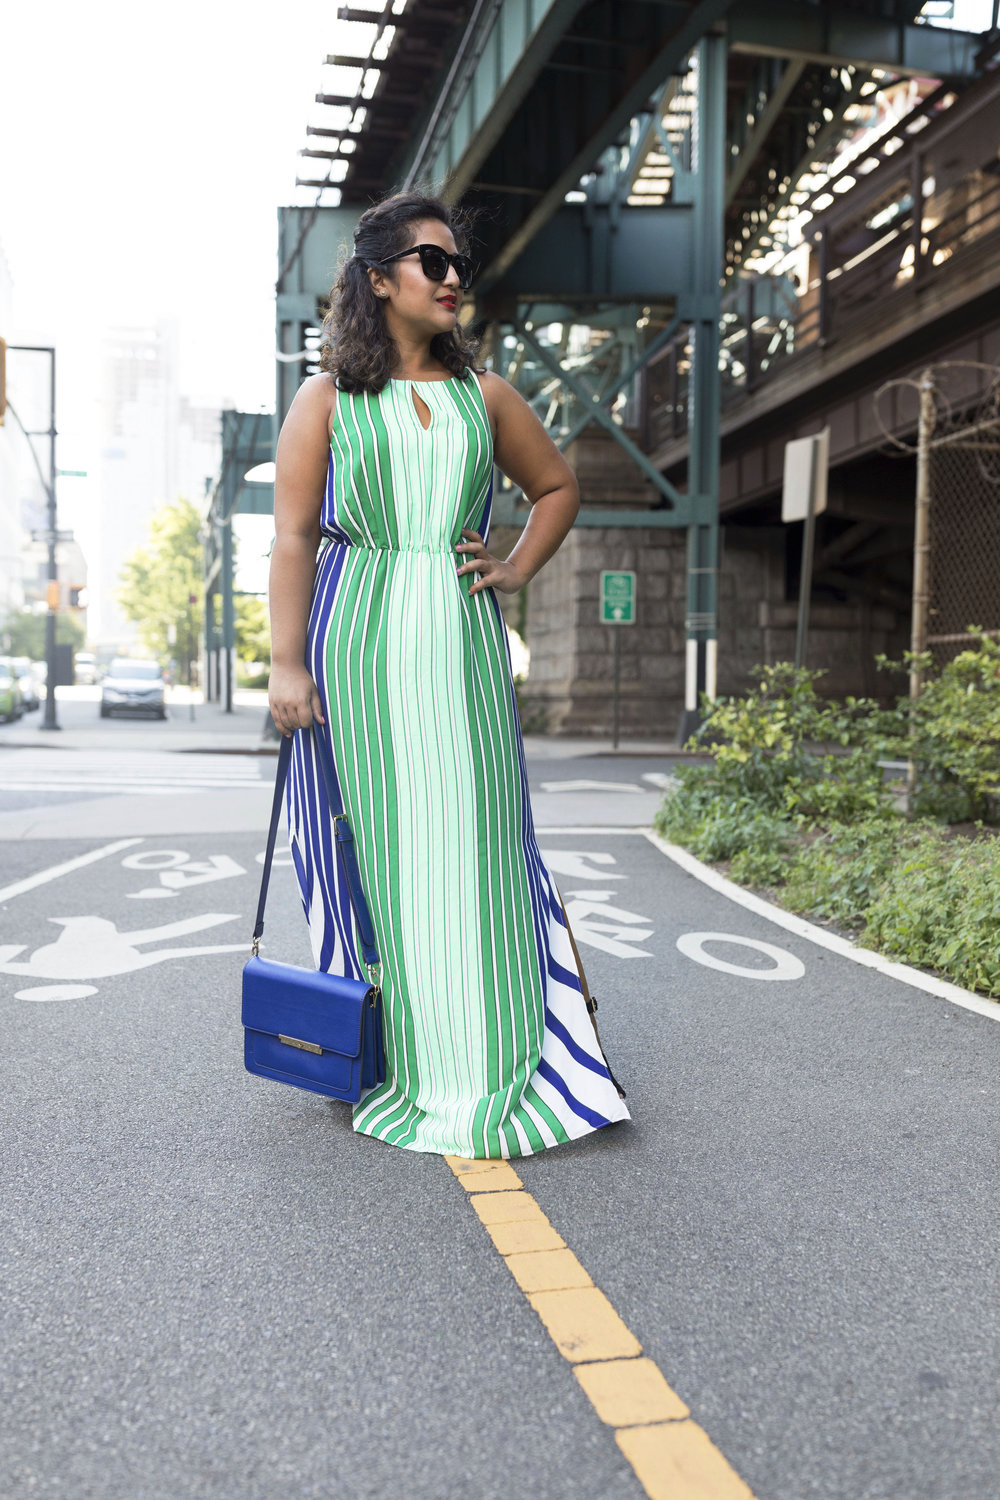 Krity S x Adrianna Papell x Stripped Maxi8.jpg